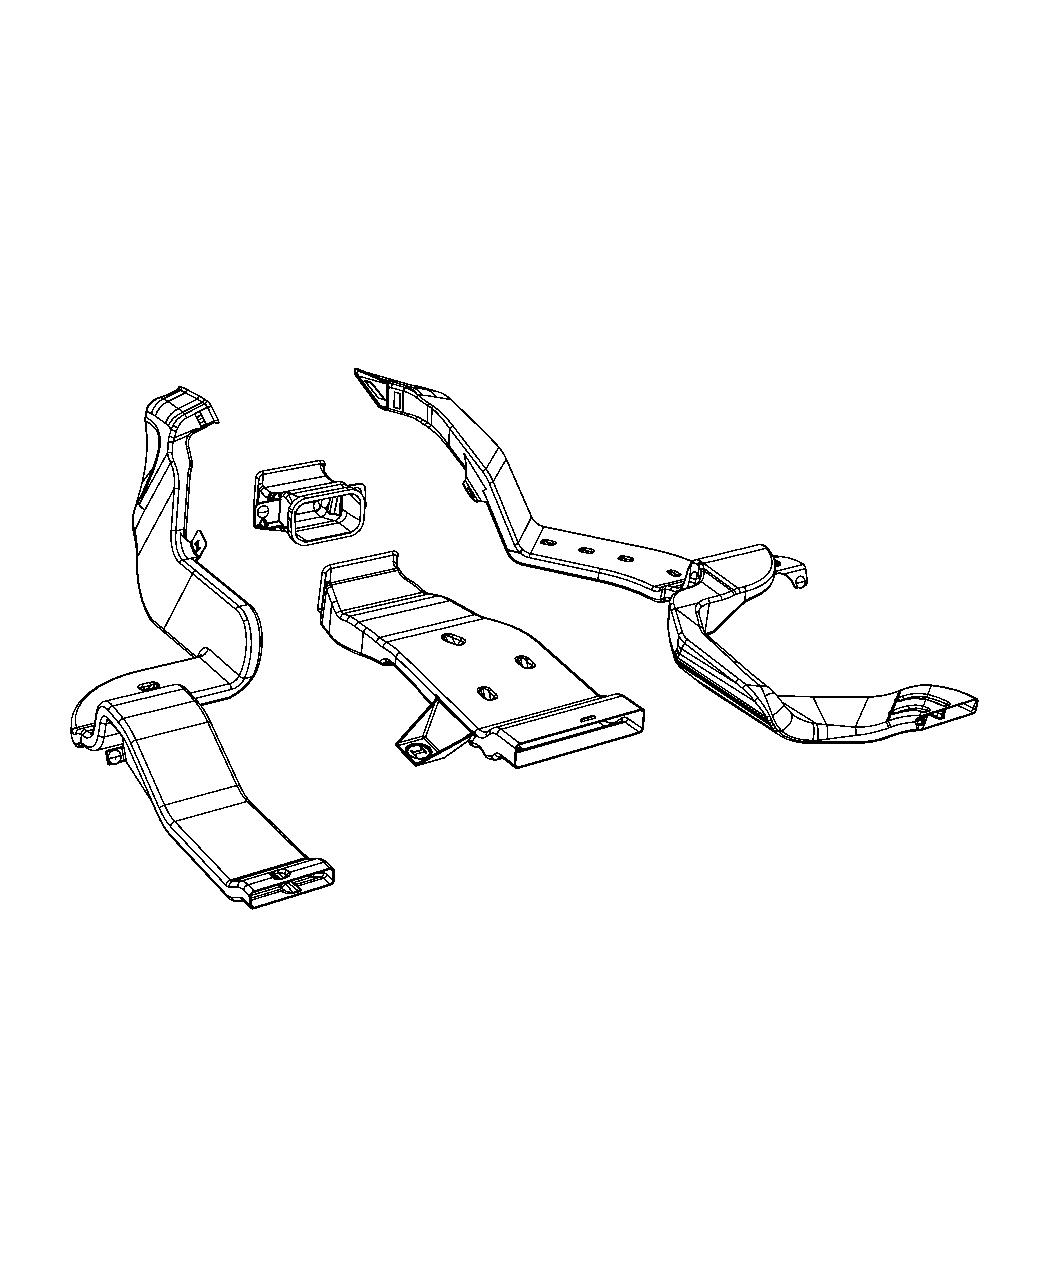 Ram Duct Floor Rear Left Ducts Conditioning Air